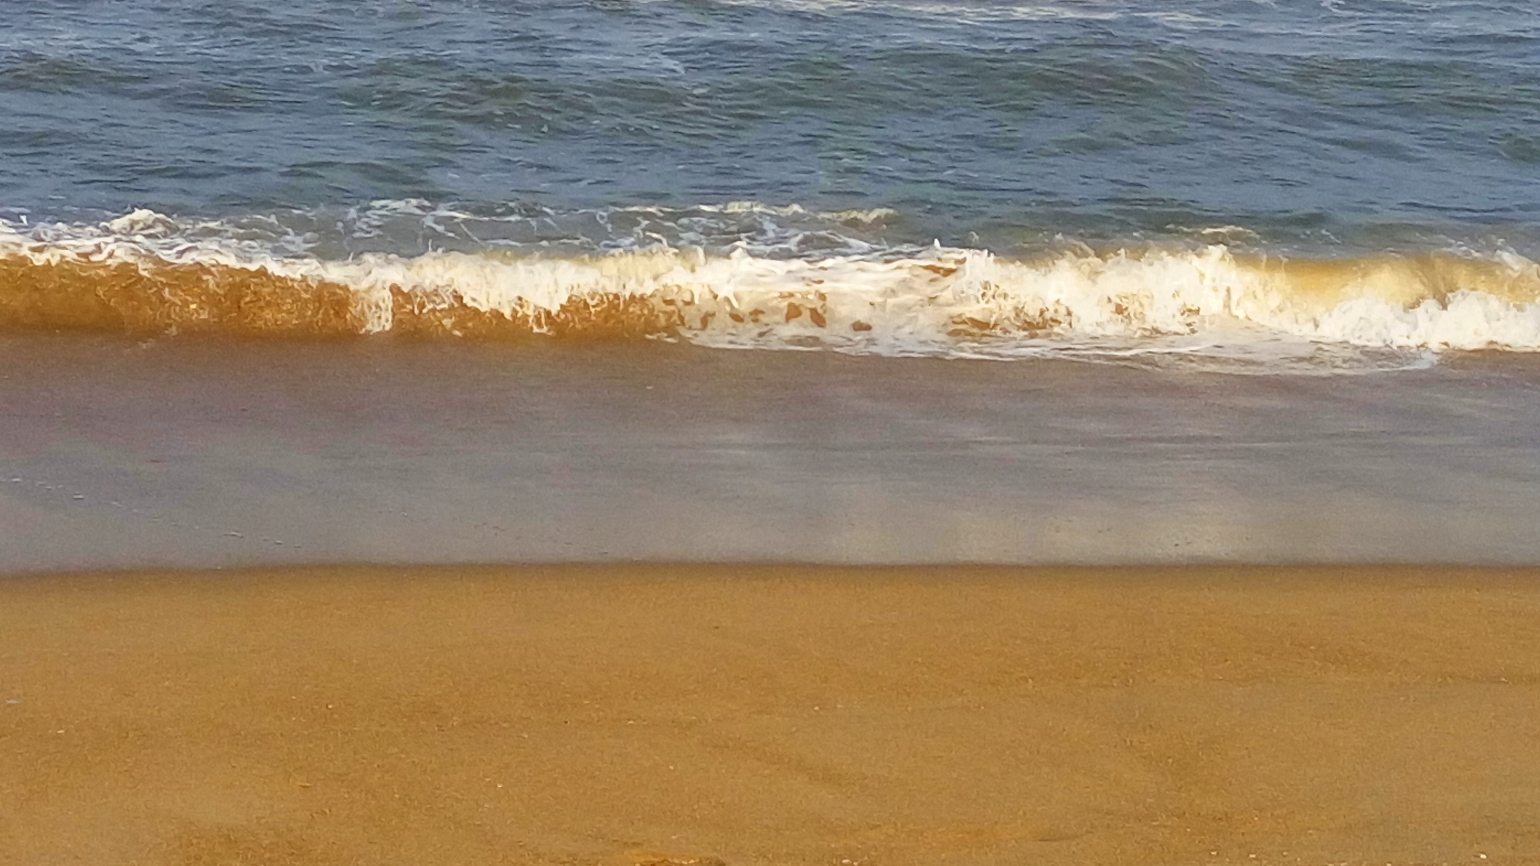 Sands on Beach - A view of a seashore with wet sand